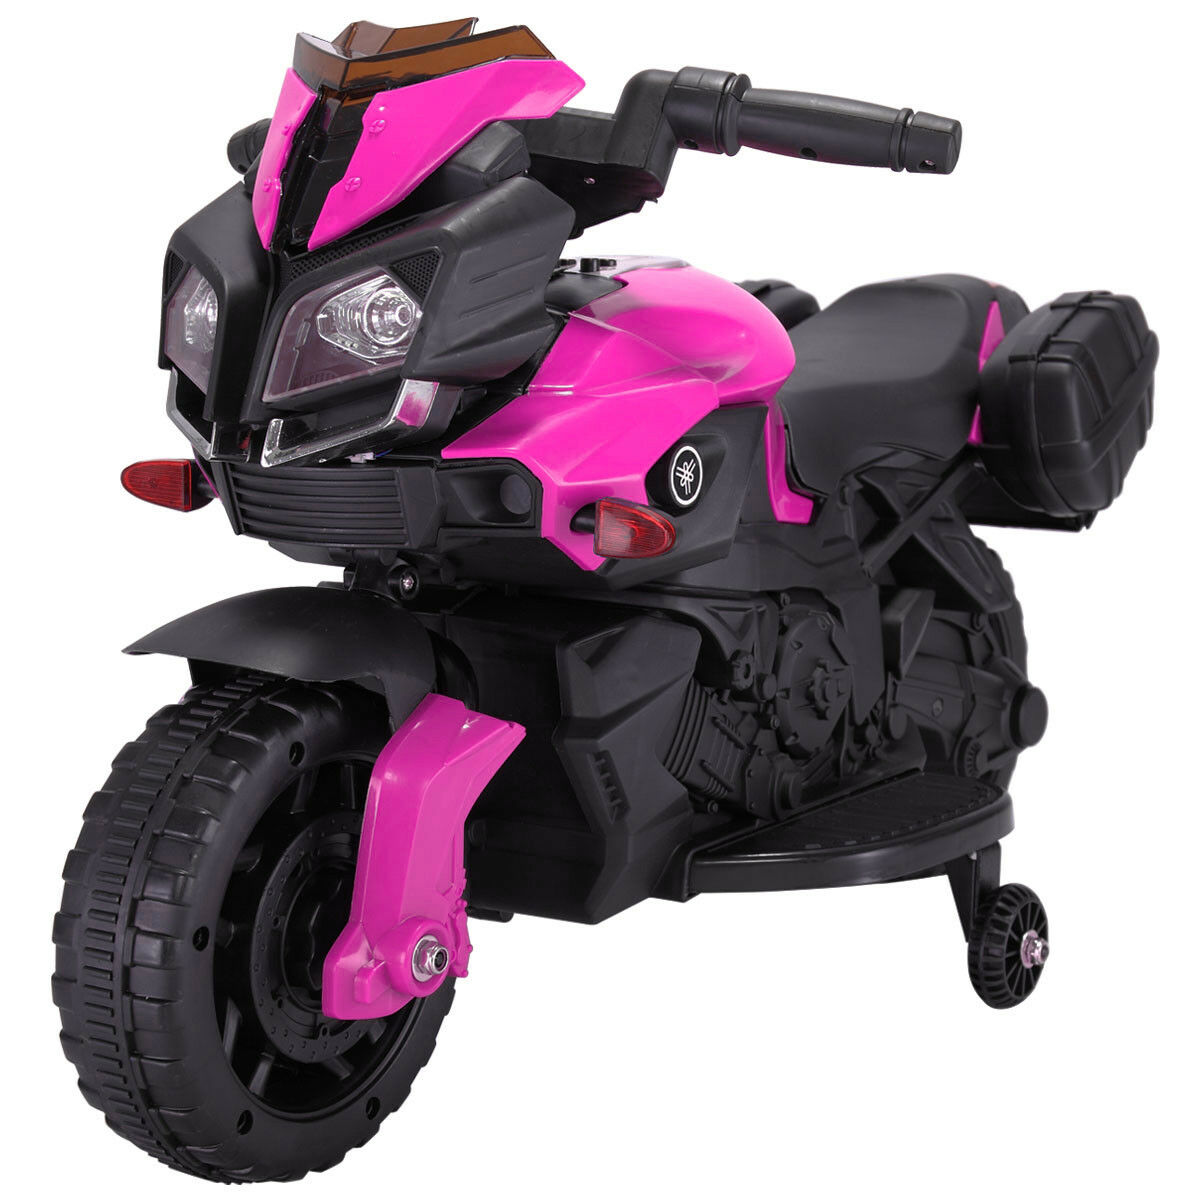 Kids Ride On Motorcycle Battery 4 Wheel Bicycle Electric Toy New Pink